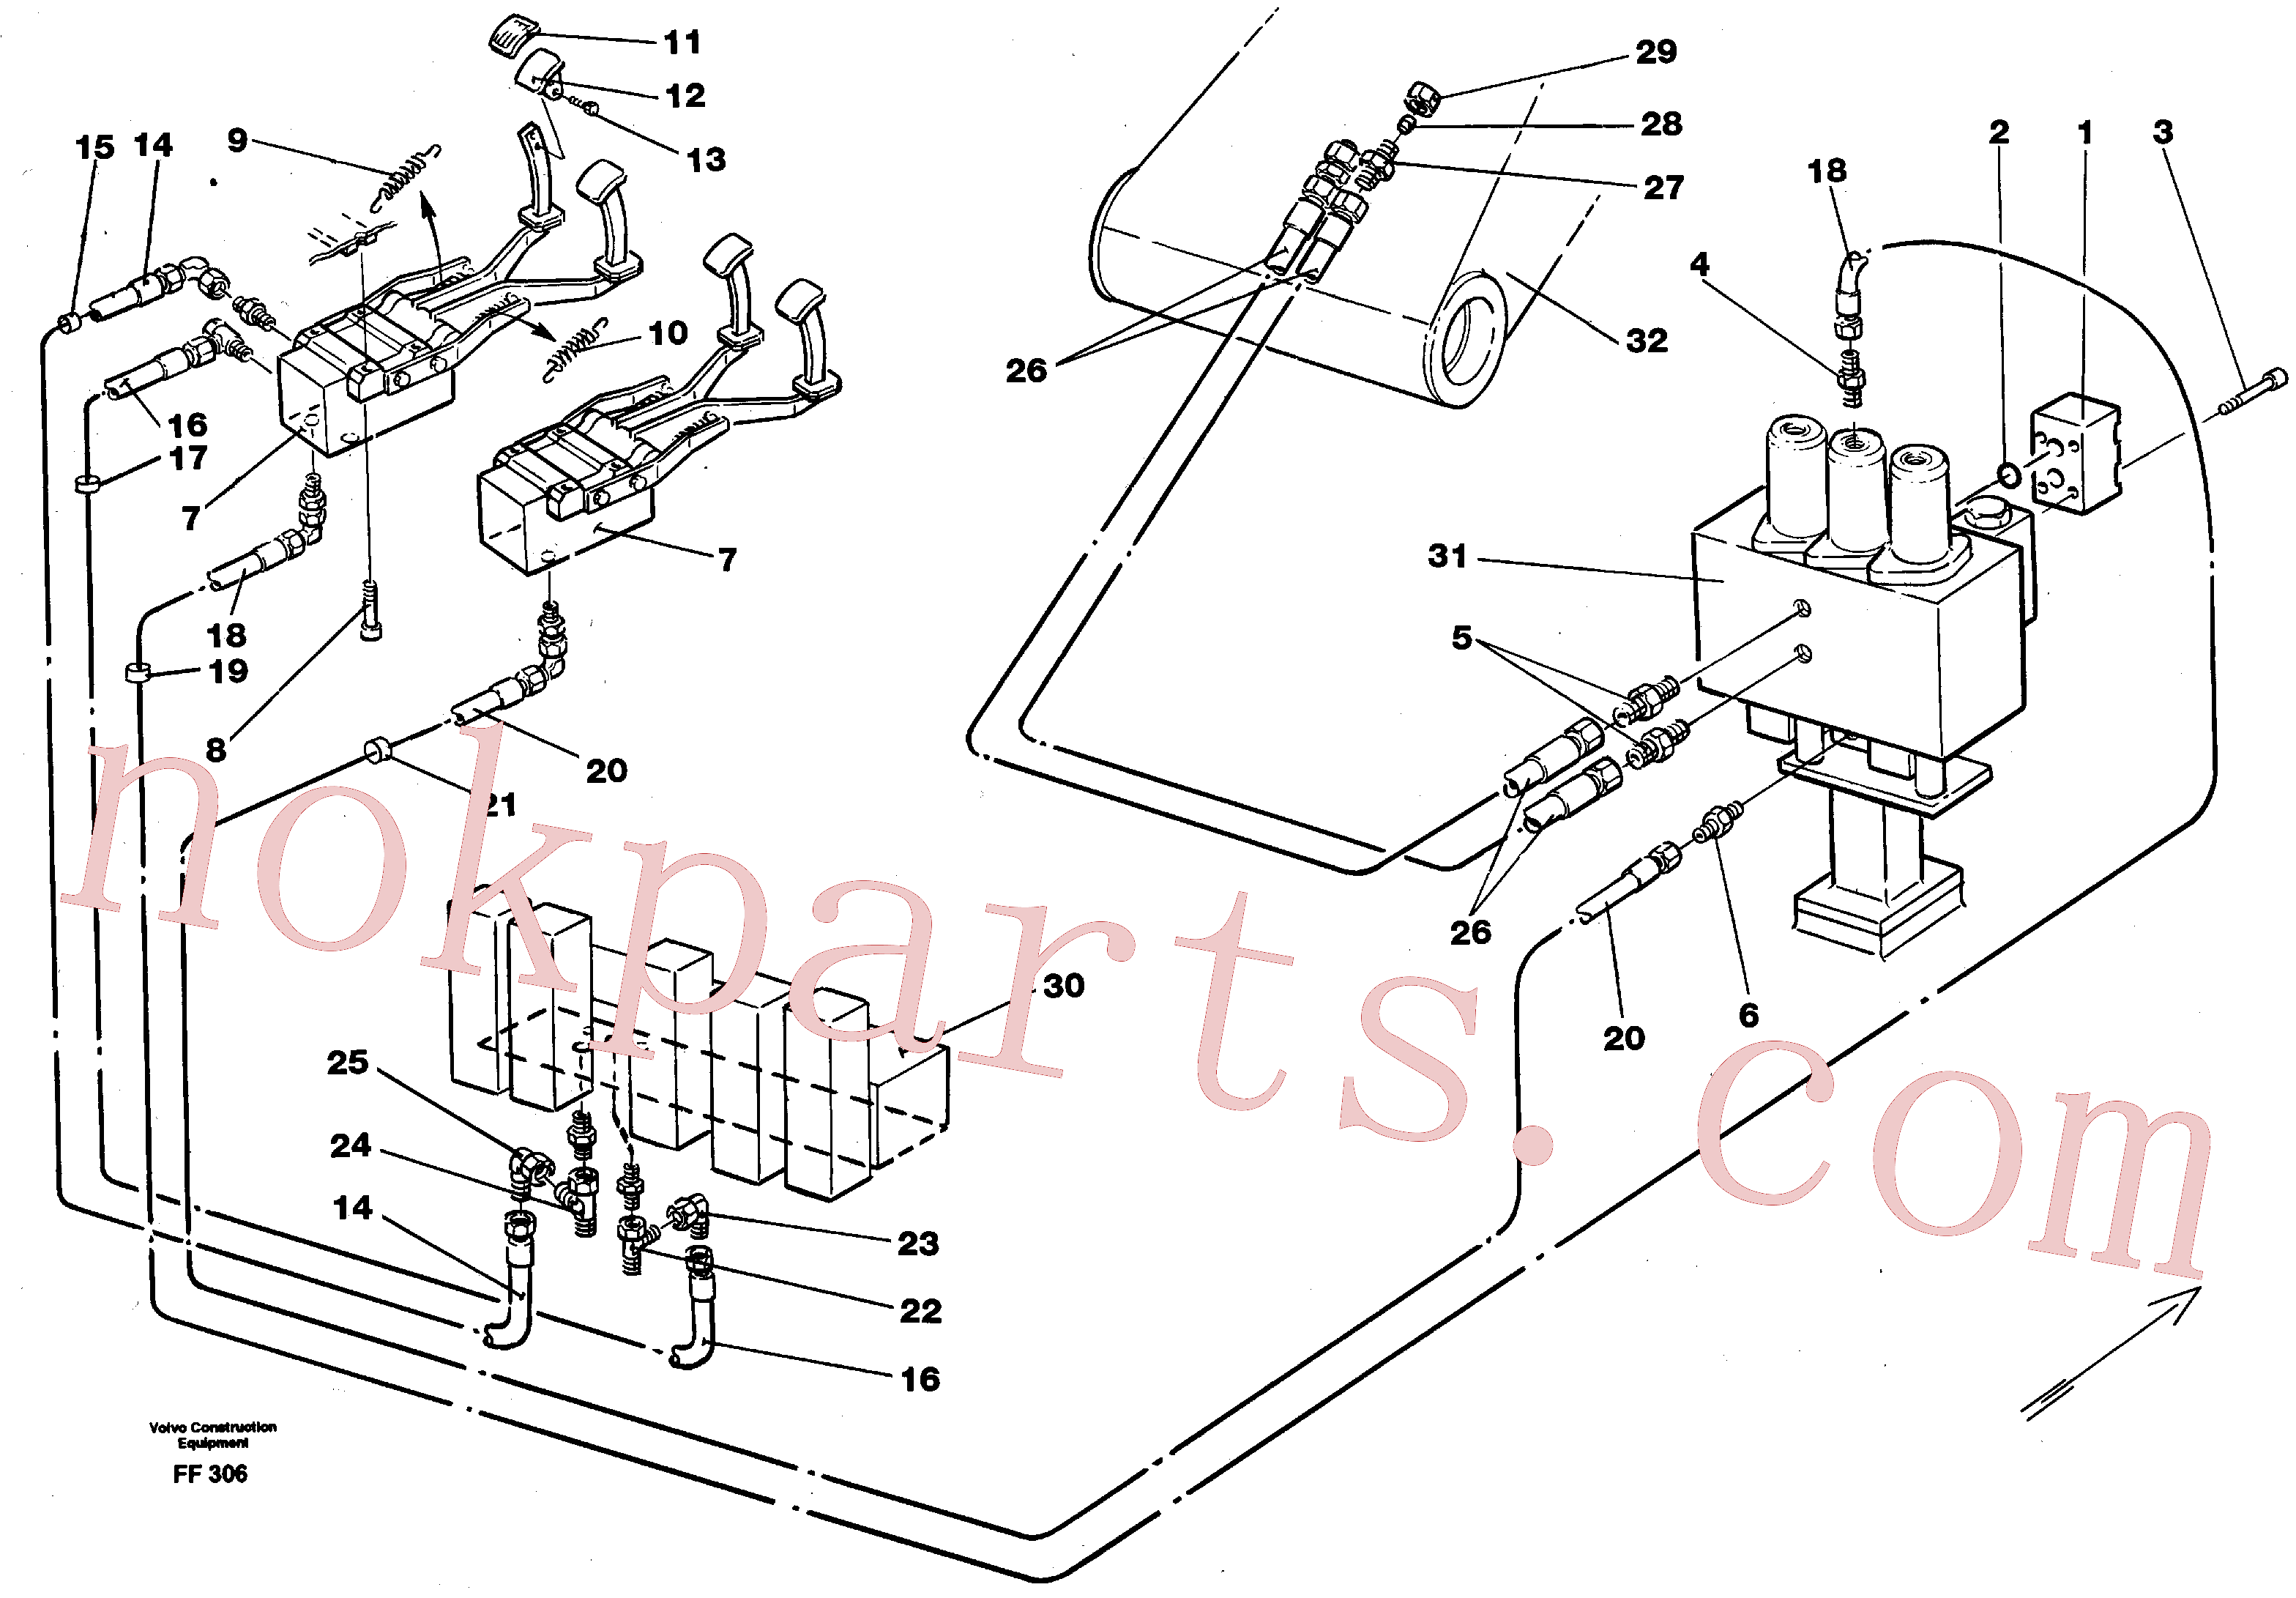 VOE14213152 for Volvo Slope bucket/rotating grab hydraulics in base machine(FF306 assembly)